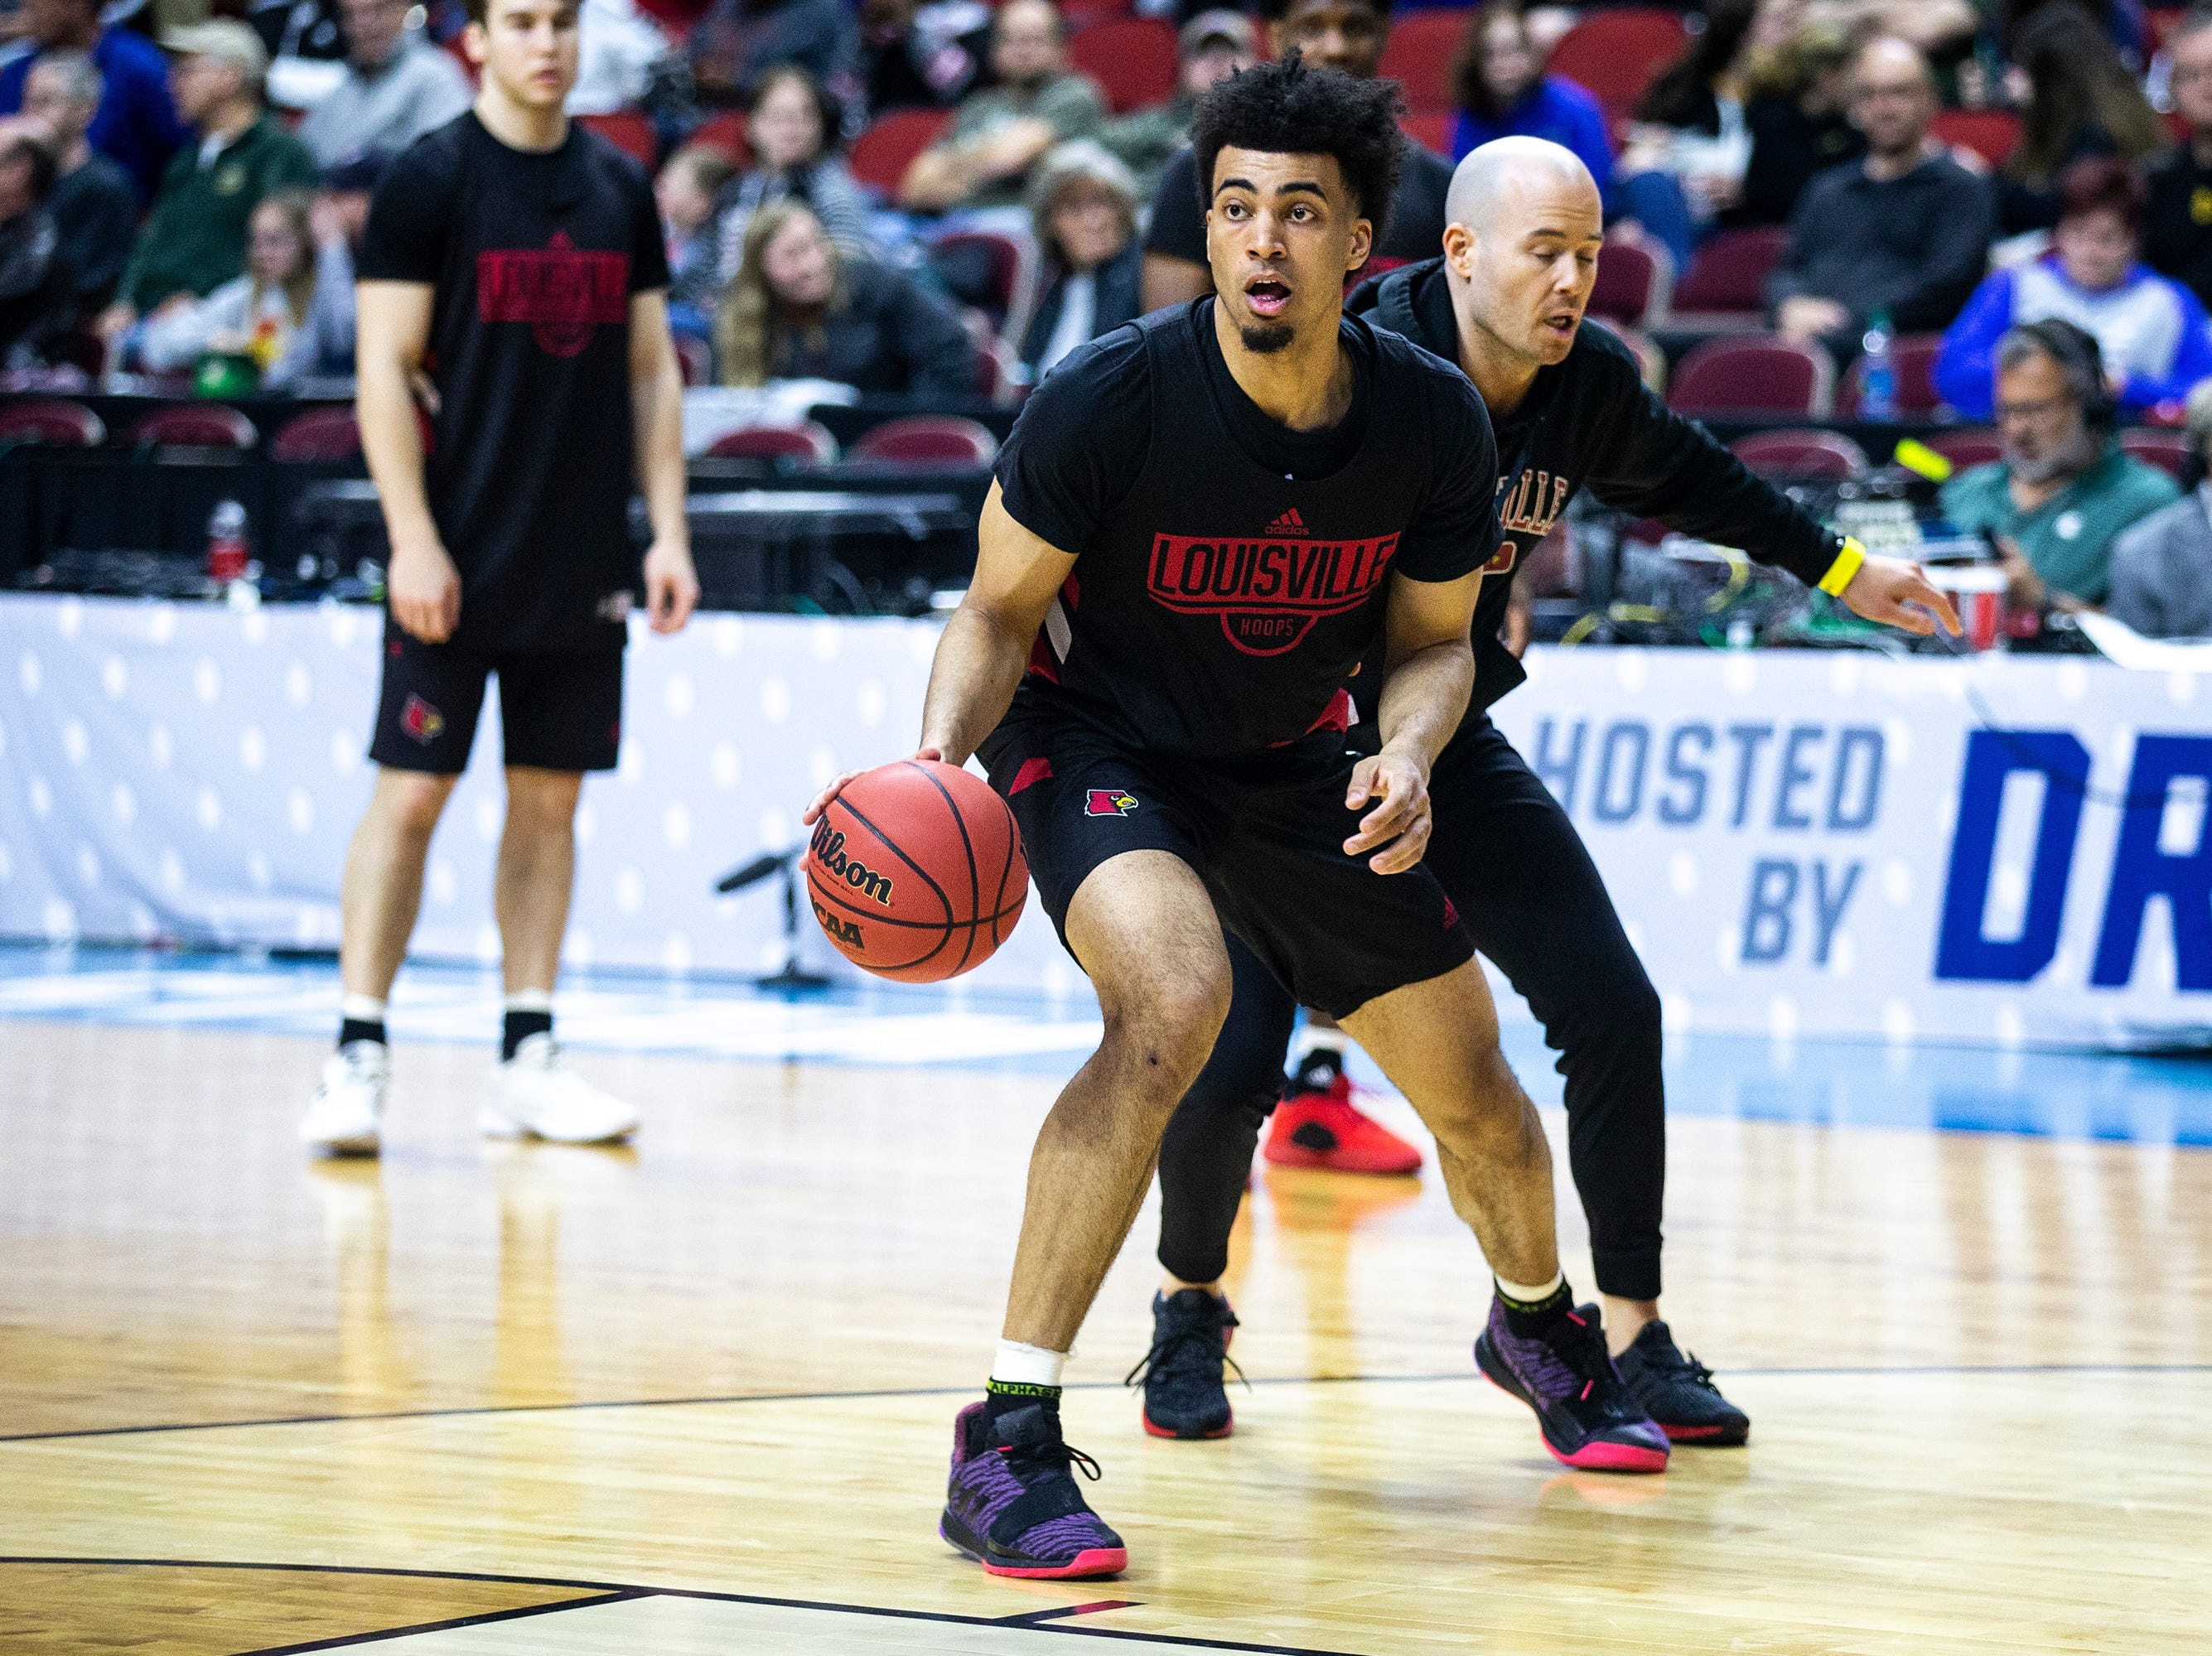 Louisville's Jordan Nwora  runs through a practice drill during Louisville's open practice before the first round of the NCAA Men's Basketball Tournament on Wednesday, March 20, 2019, at Wells Fargo Arena in Des Moines, Iowa.